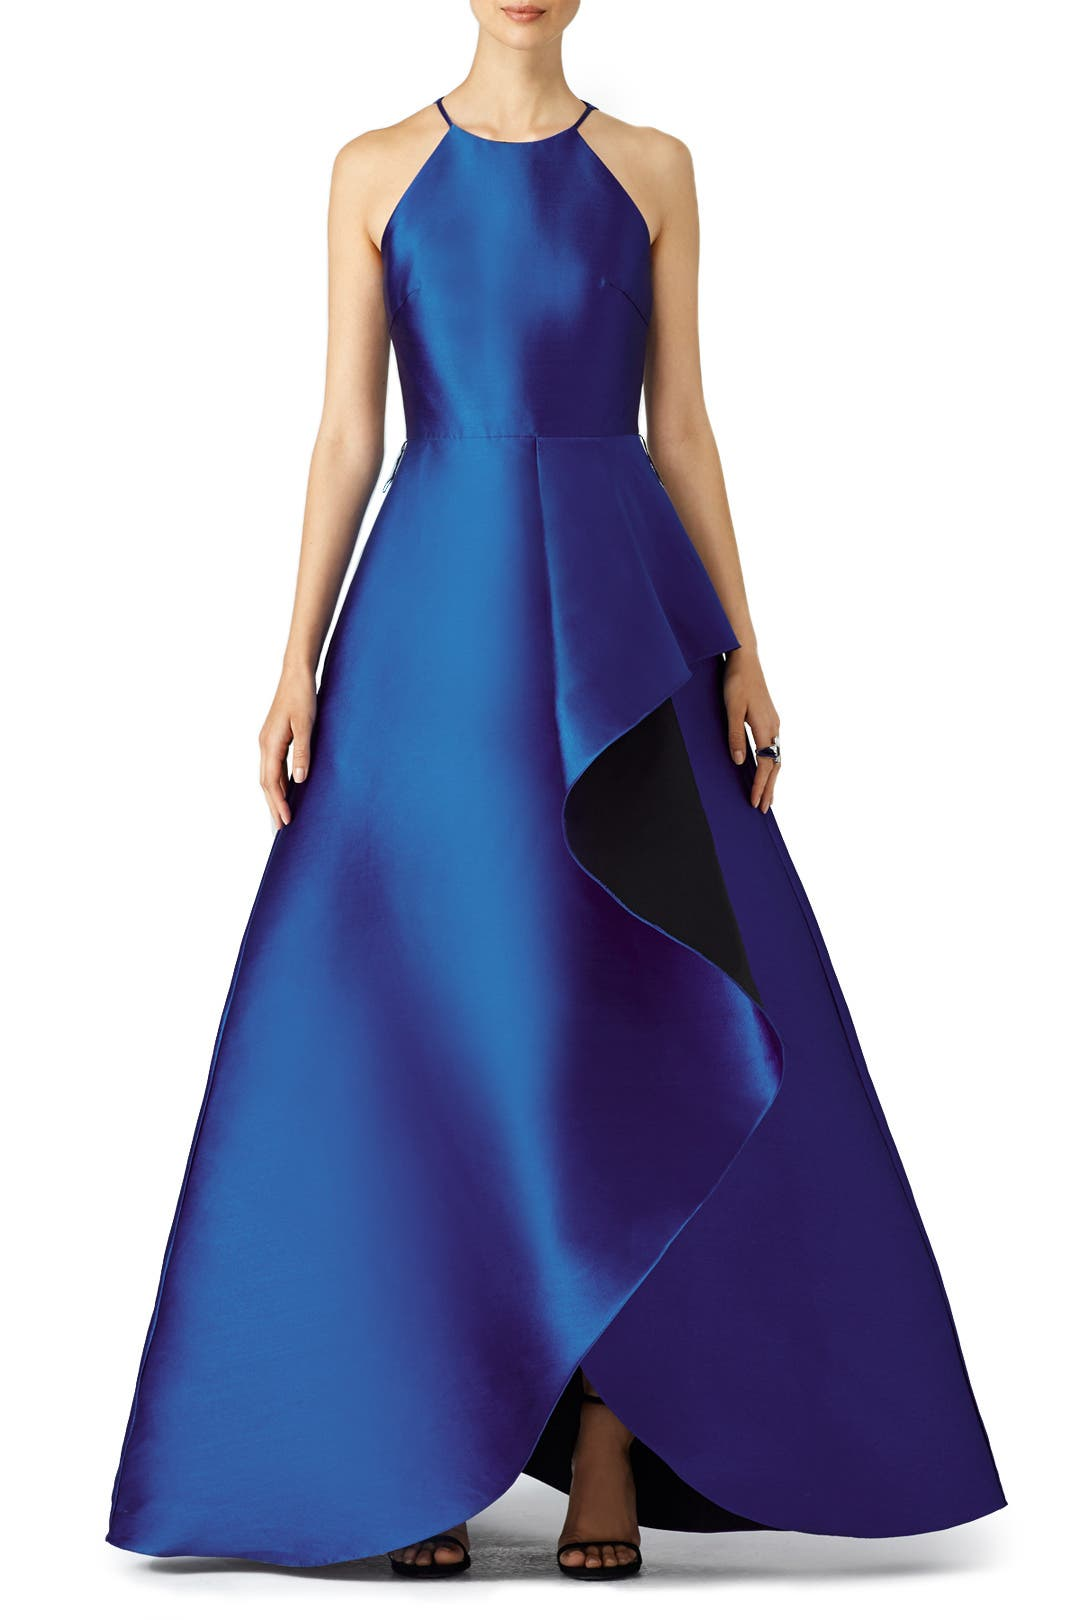 Royal Wedding Dresses For Rent : Royal blue reverse ruffle gown by badgley mischka for